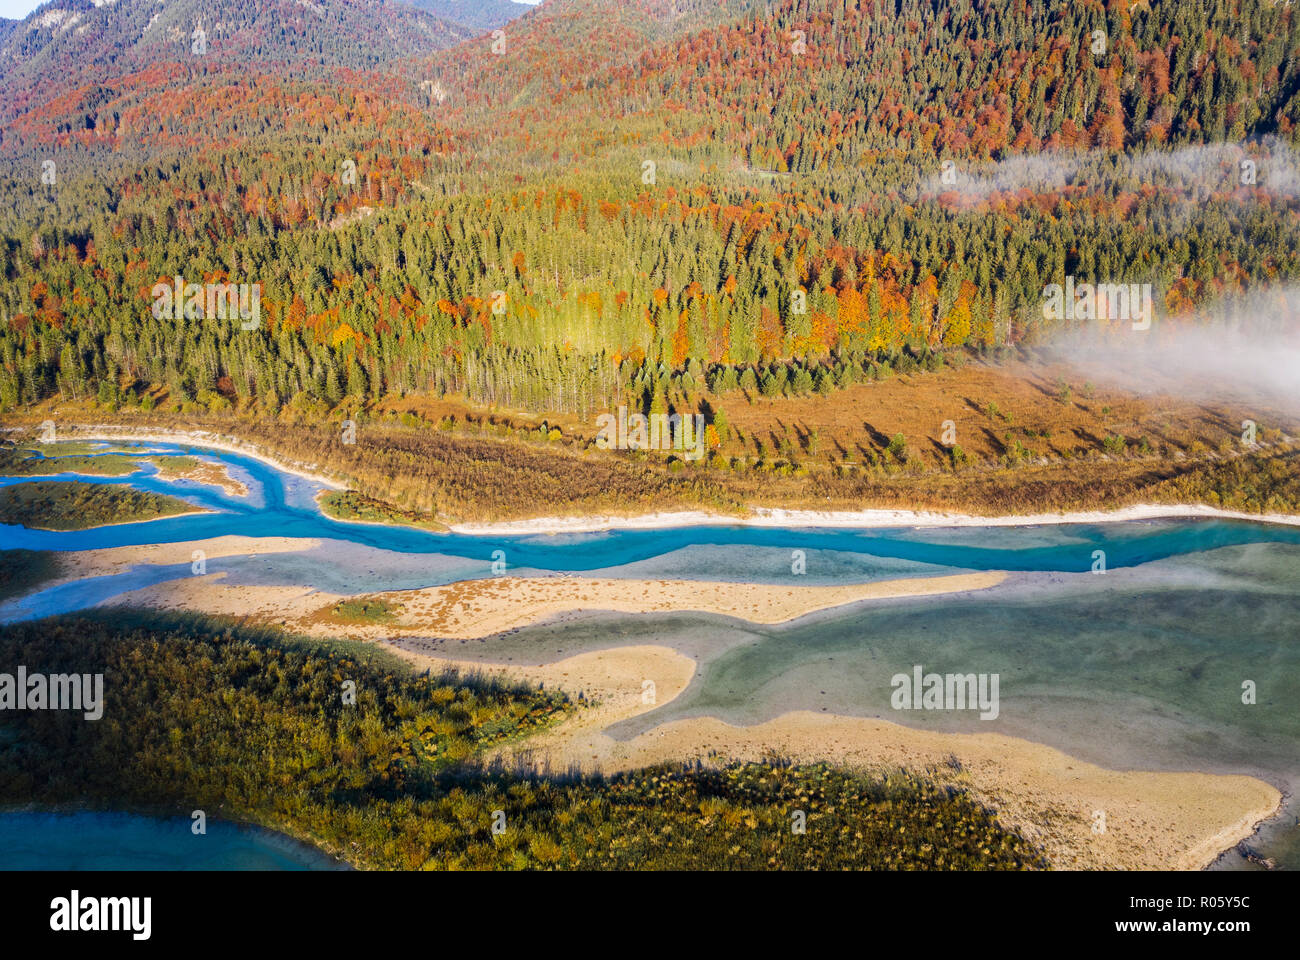 Isar, at the inflow into the Sylvenstein lake, drone image, Lenggries, Isarwinkel, Upper Bavaria, Bavaria, Germany - Stock Image